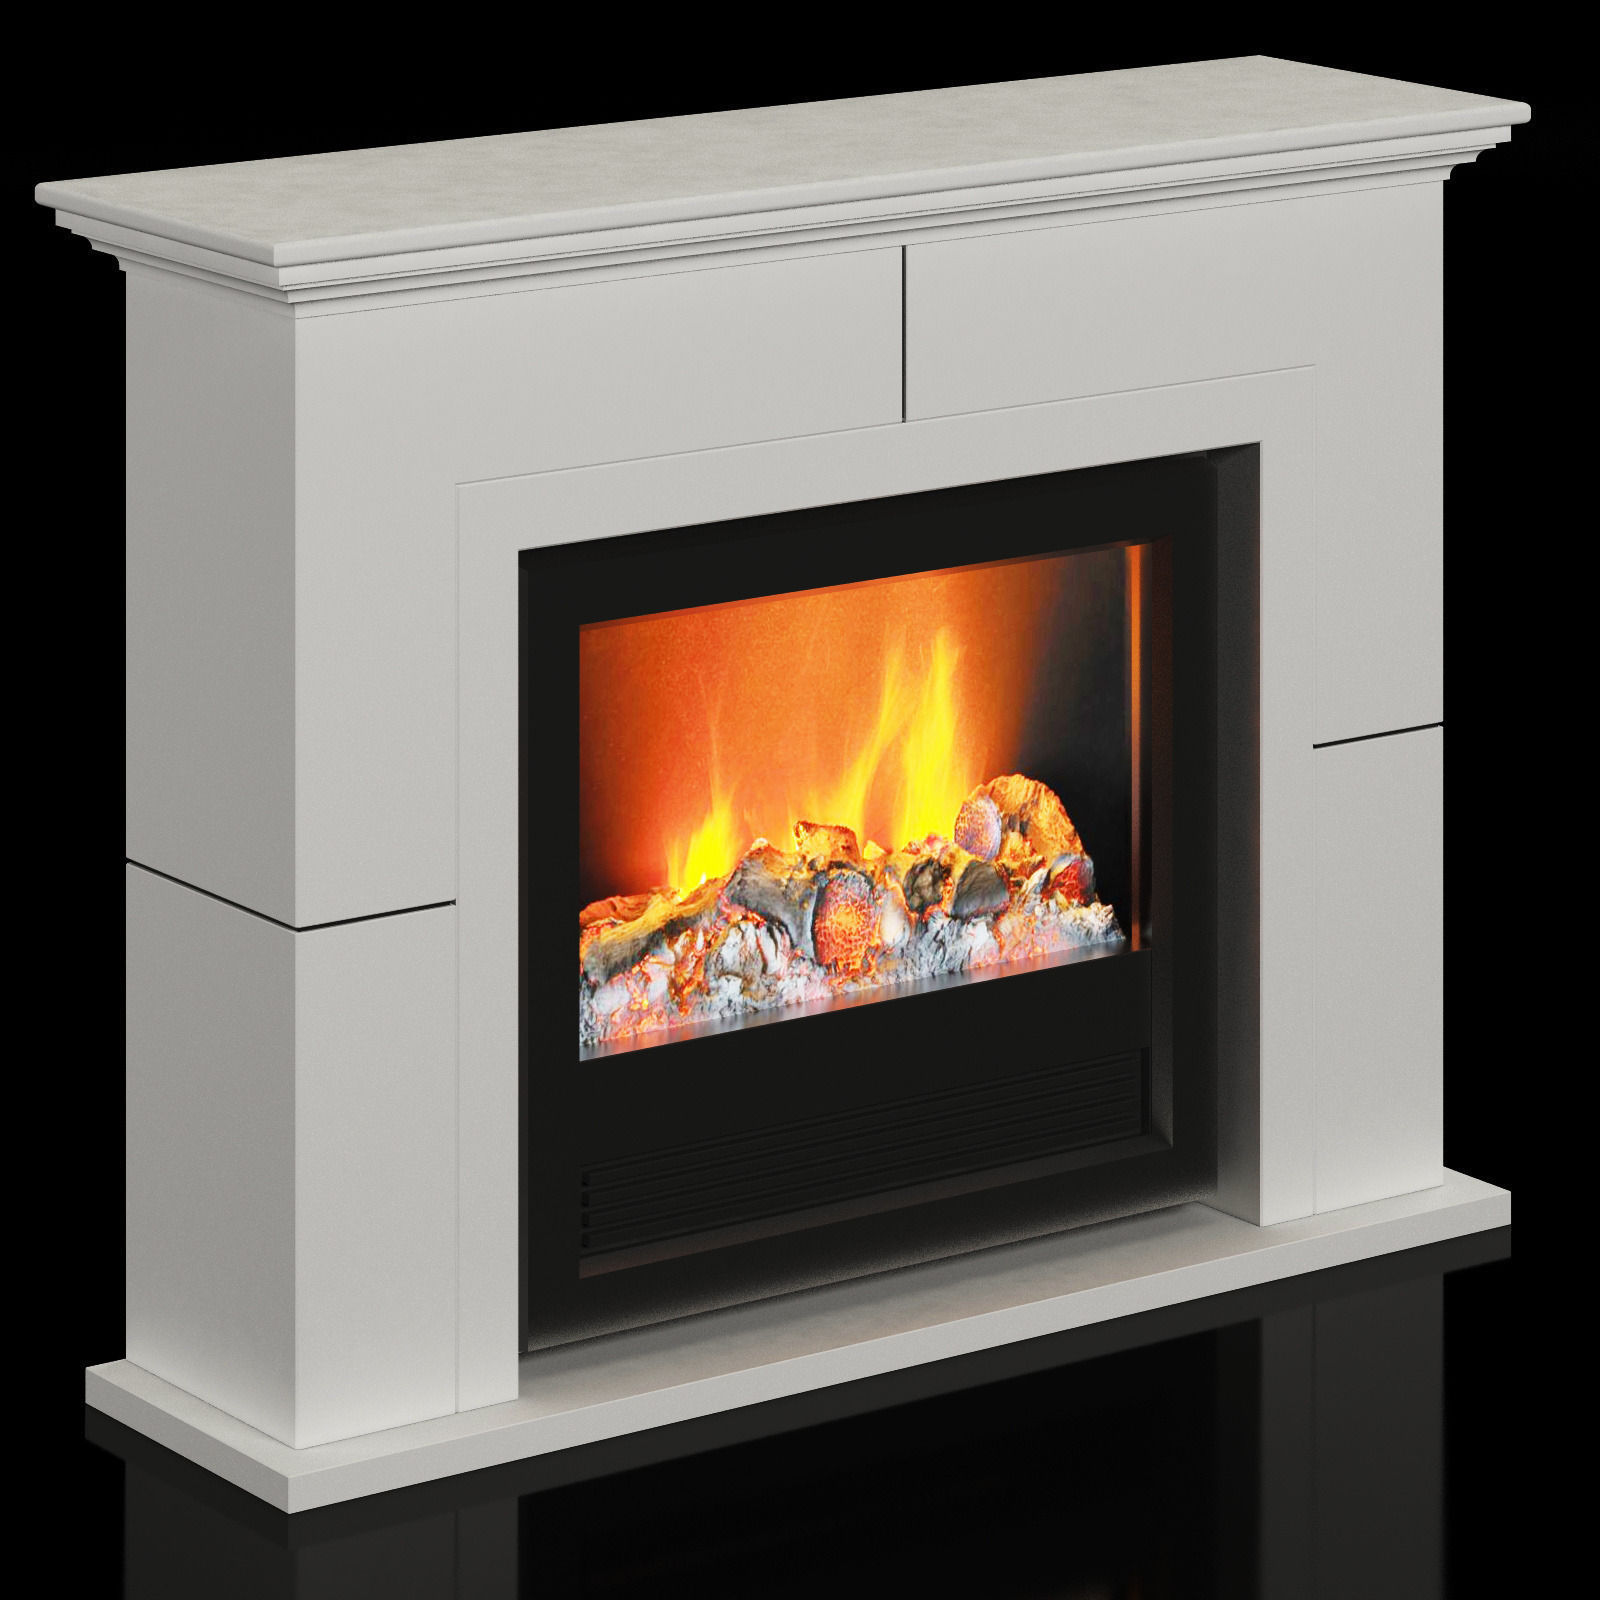 fans heaters costco fireplaces hardware dimplex uk p dehumidifiers electric diy conditioners opti air stove myst stoves fireplace tyres optimyst gosford